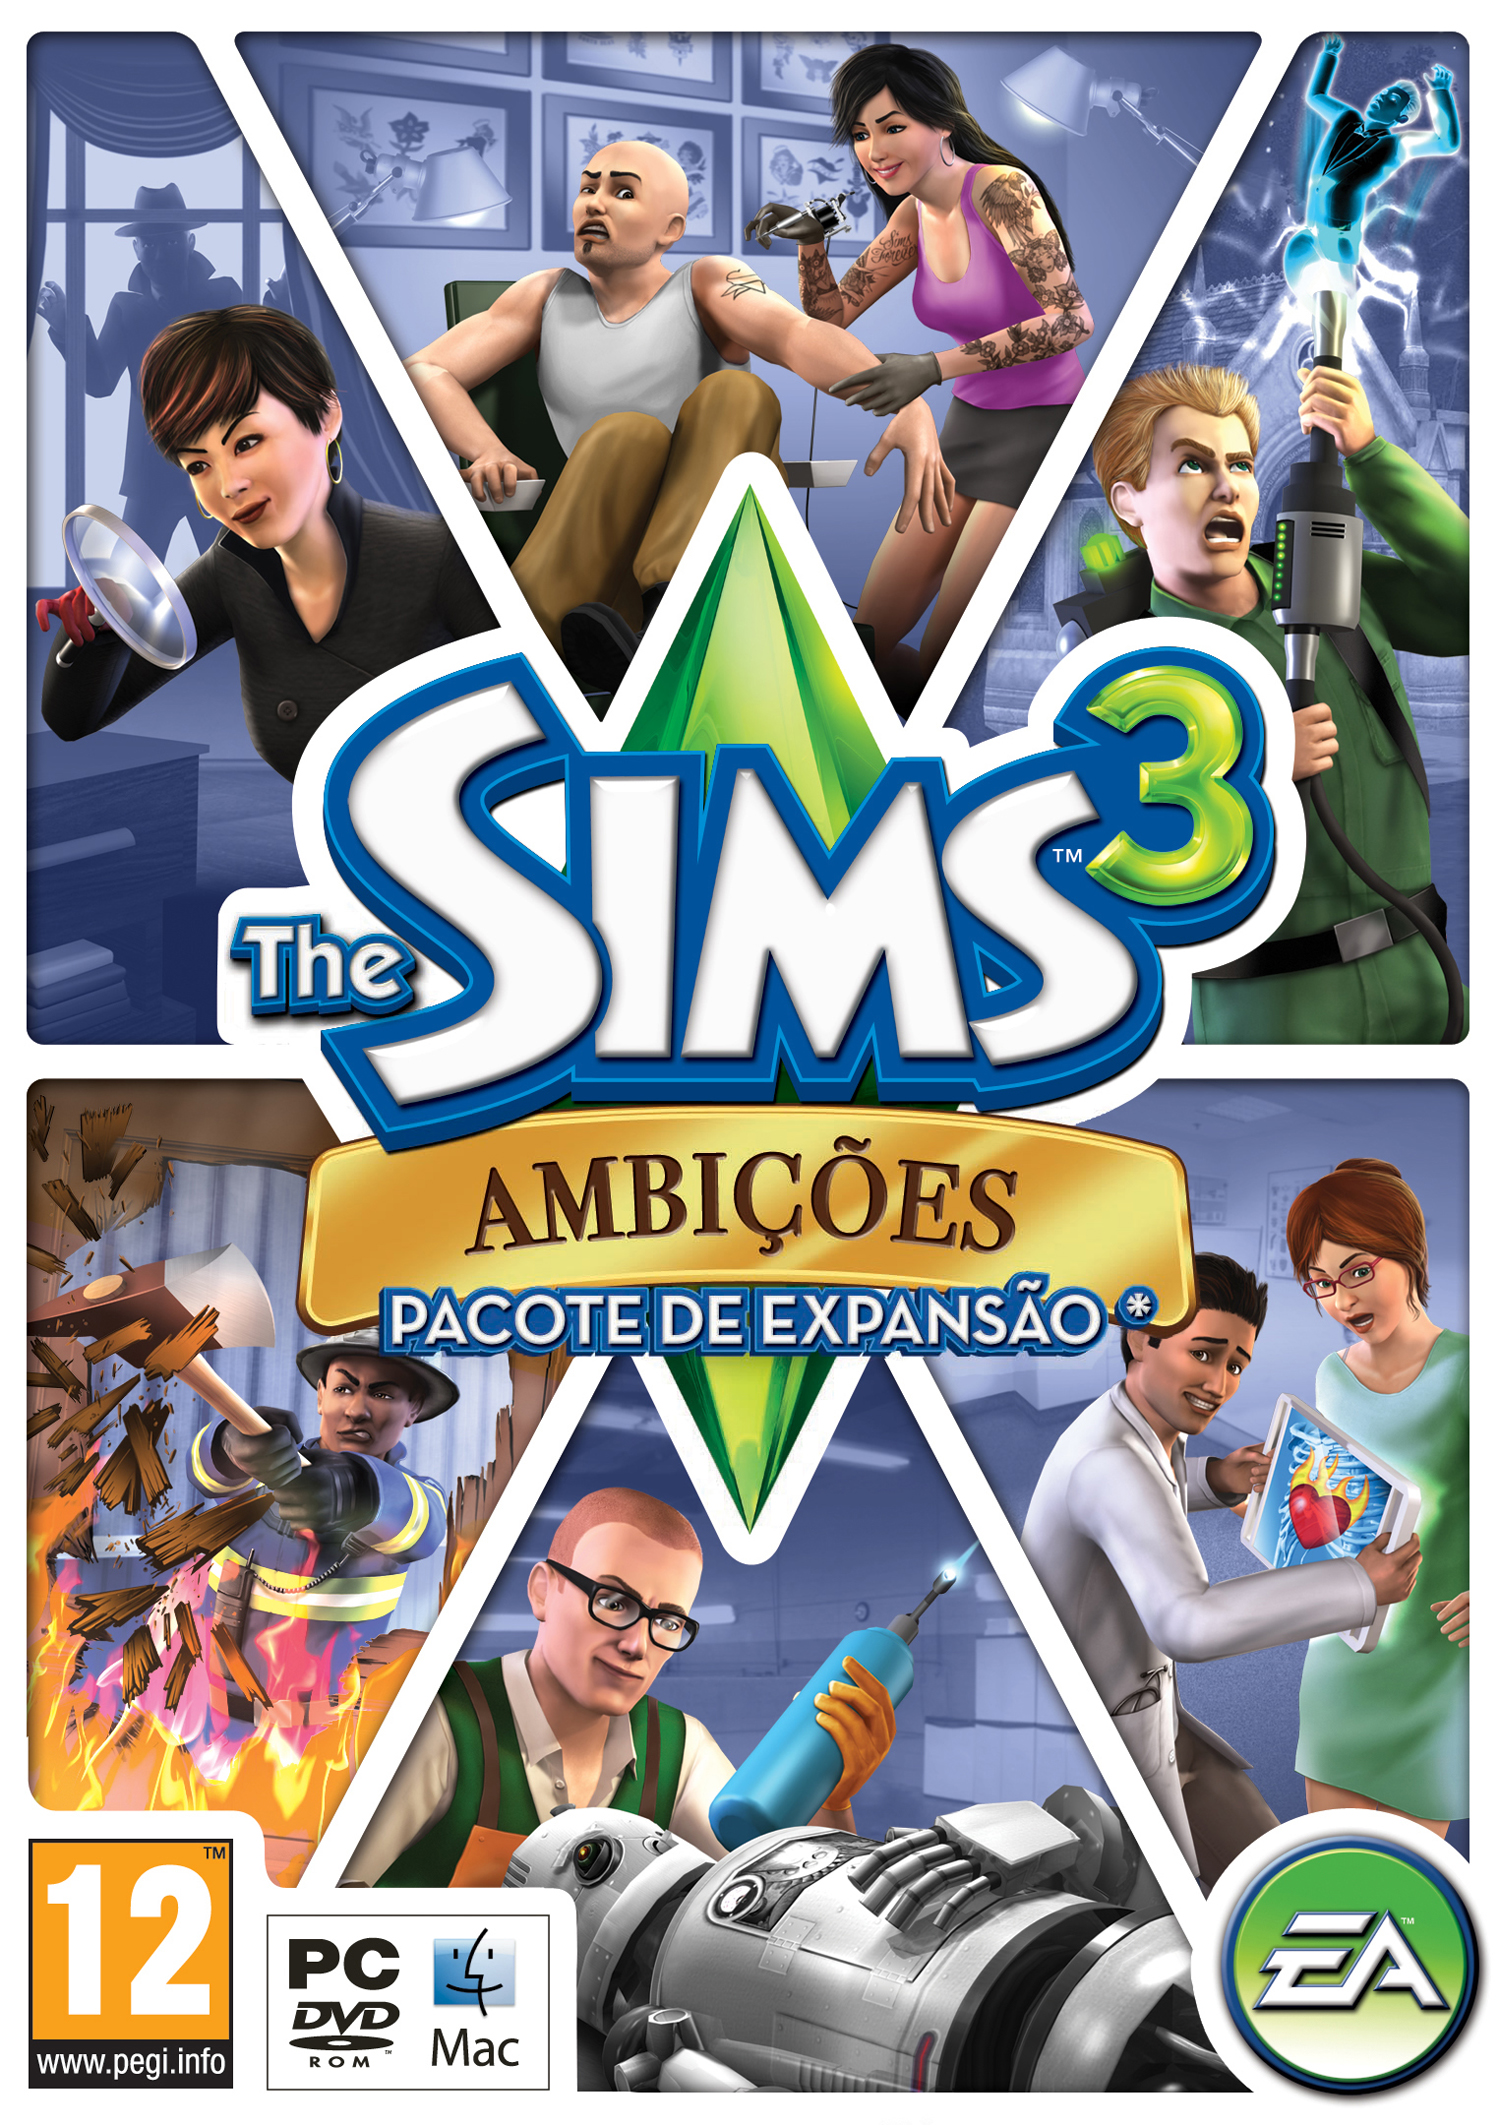 http://images3.wikia.nocookie.net/__cb20130317014919/simswiki/pt-br/images/4/4f/Packshot_The_Sims_3_Ambi%C3%A7%C3%B5es.jpg